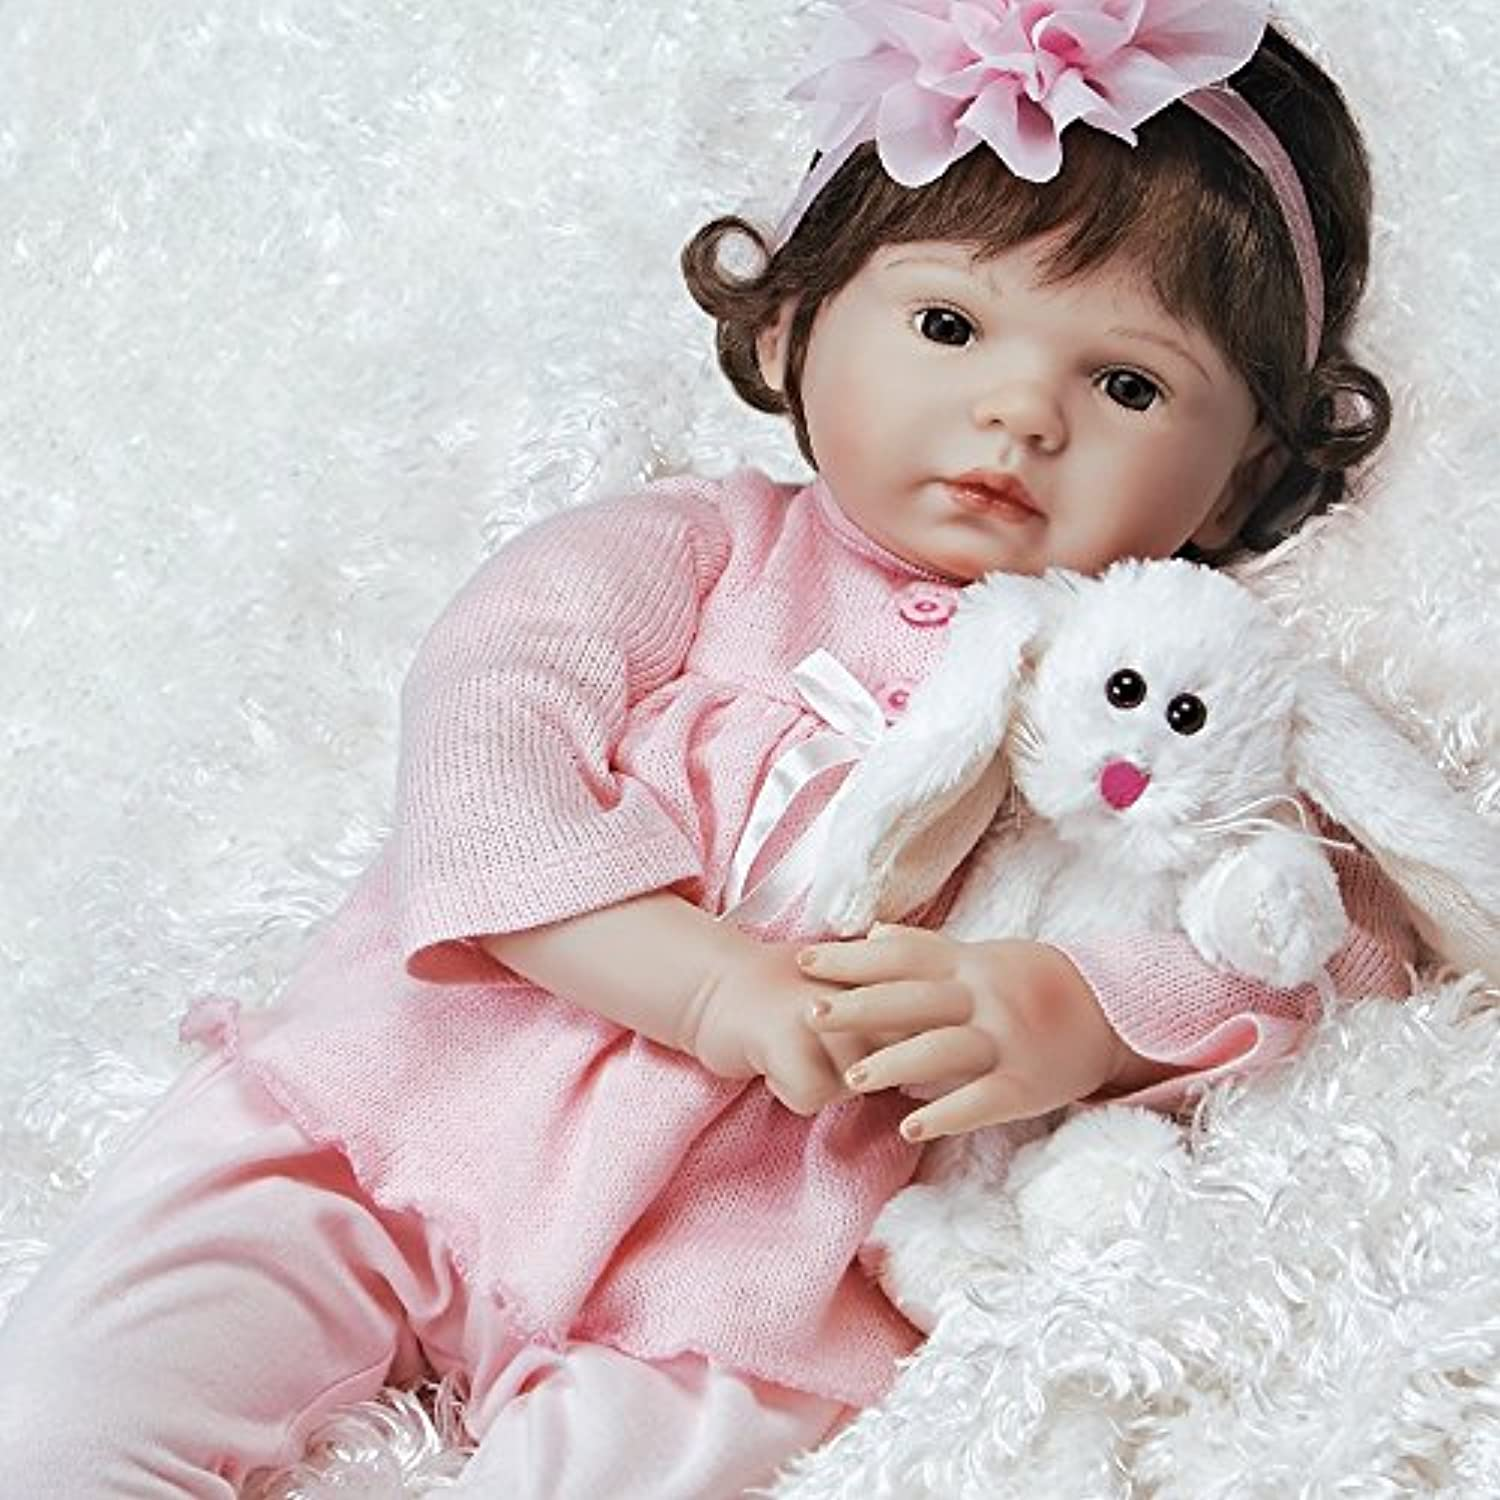 Paradise Galleries Realistic & Reborn Like Baby Doll in Silicone-Like FlexTouch Vinyl - Bunny Love, 20 inch